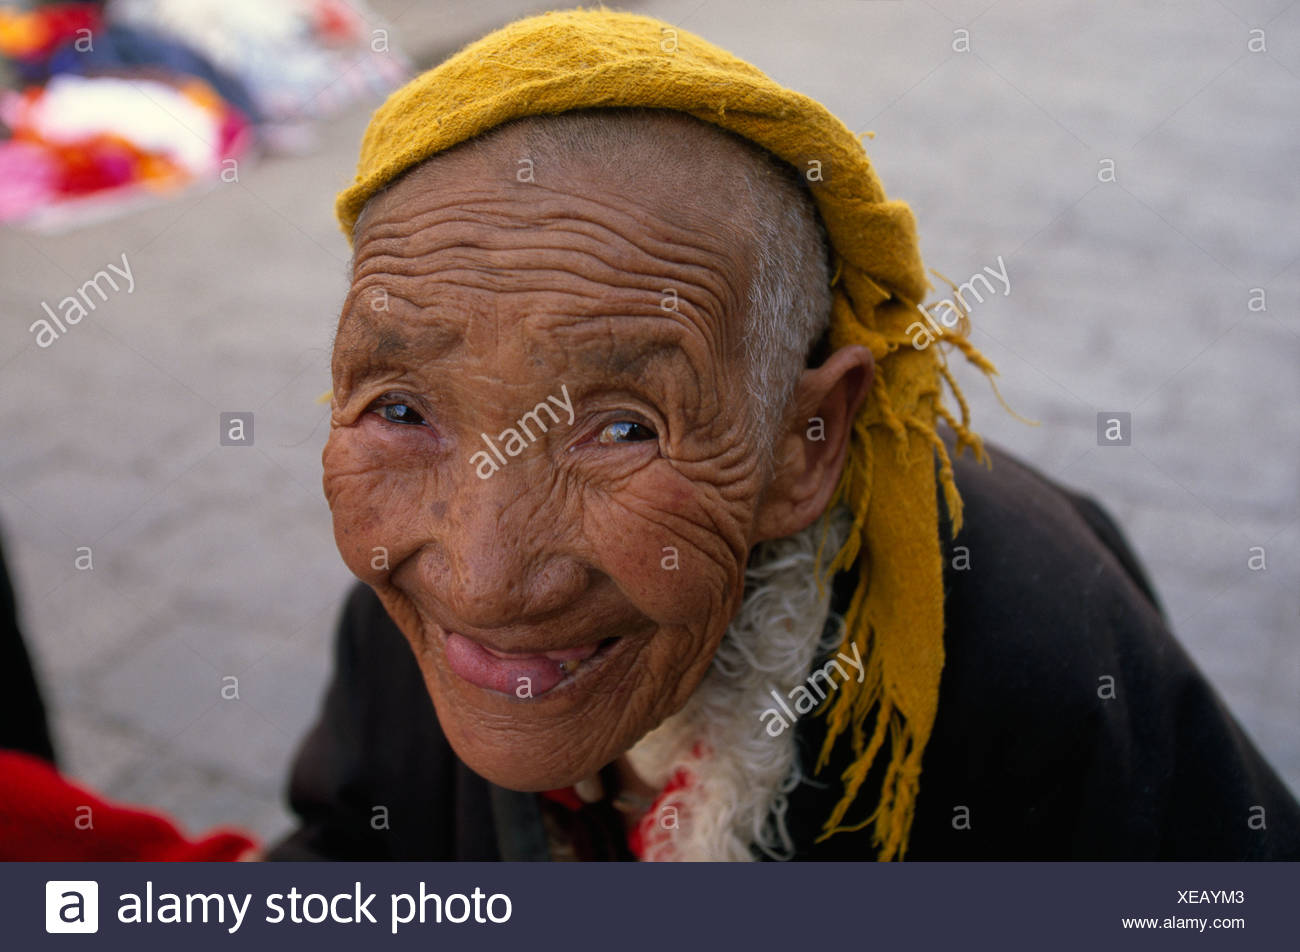 A Buddhist pilgrim smiles into the camera in Lhasa Tibet. - Stock Image